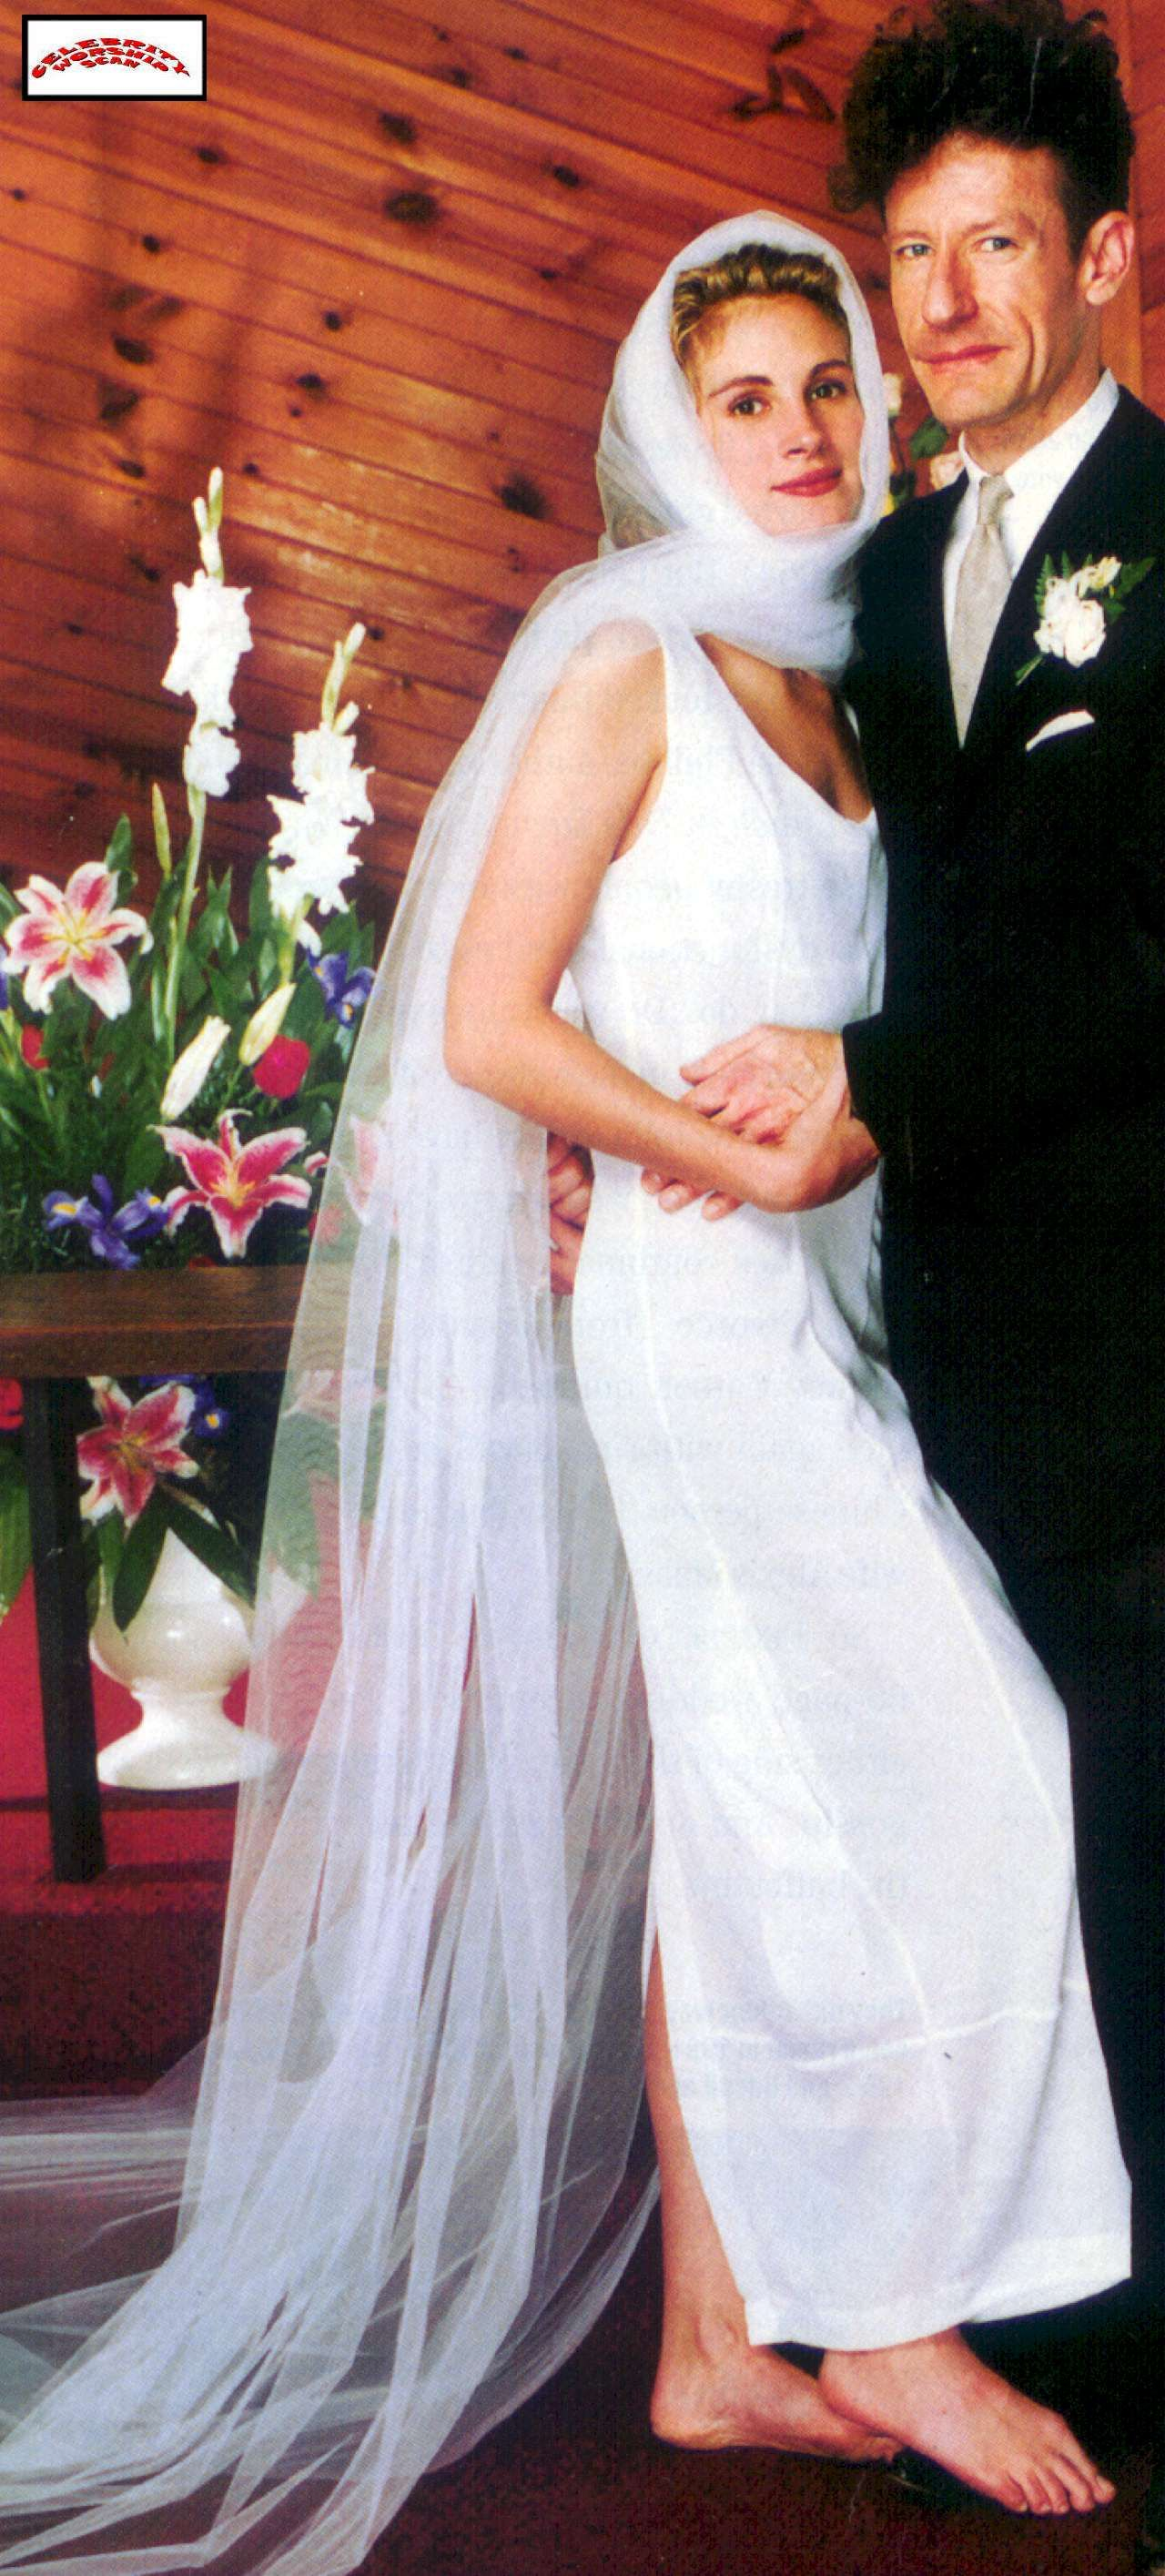 Lyle Lovett Julia Roberts Wedding